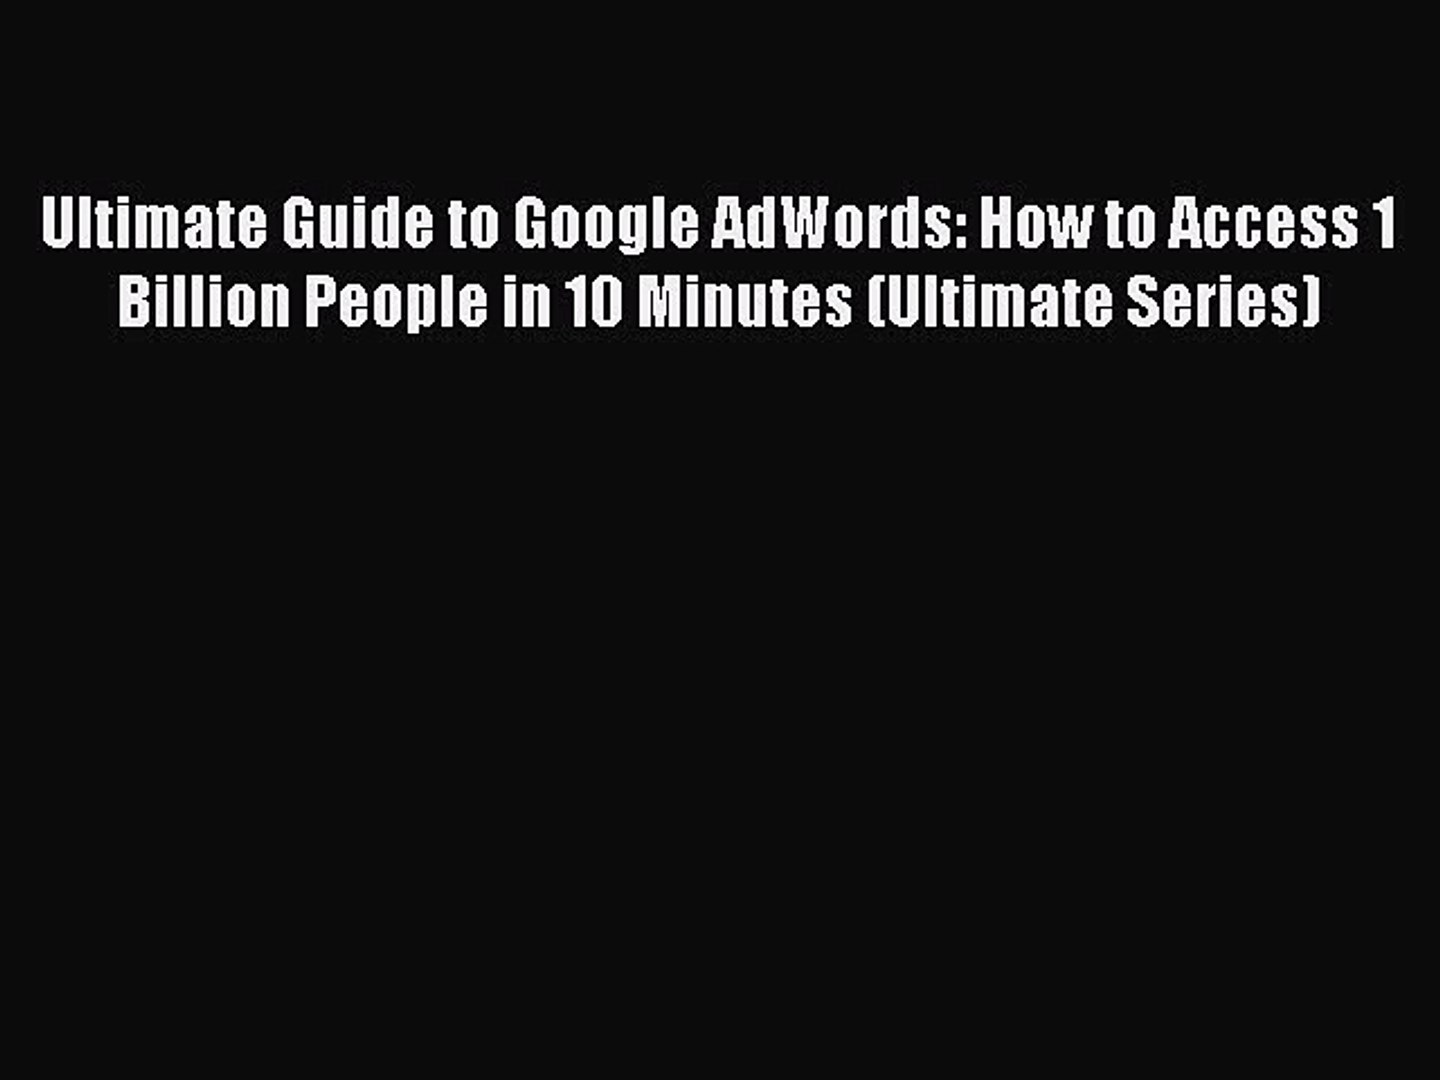 Read Ultimate Guide to Google AdWords: How to Access 1 Billion People in 10 Minutes (Ultimate